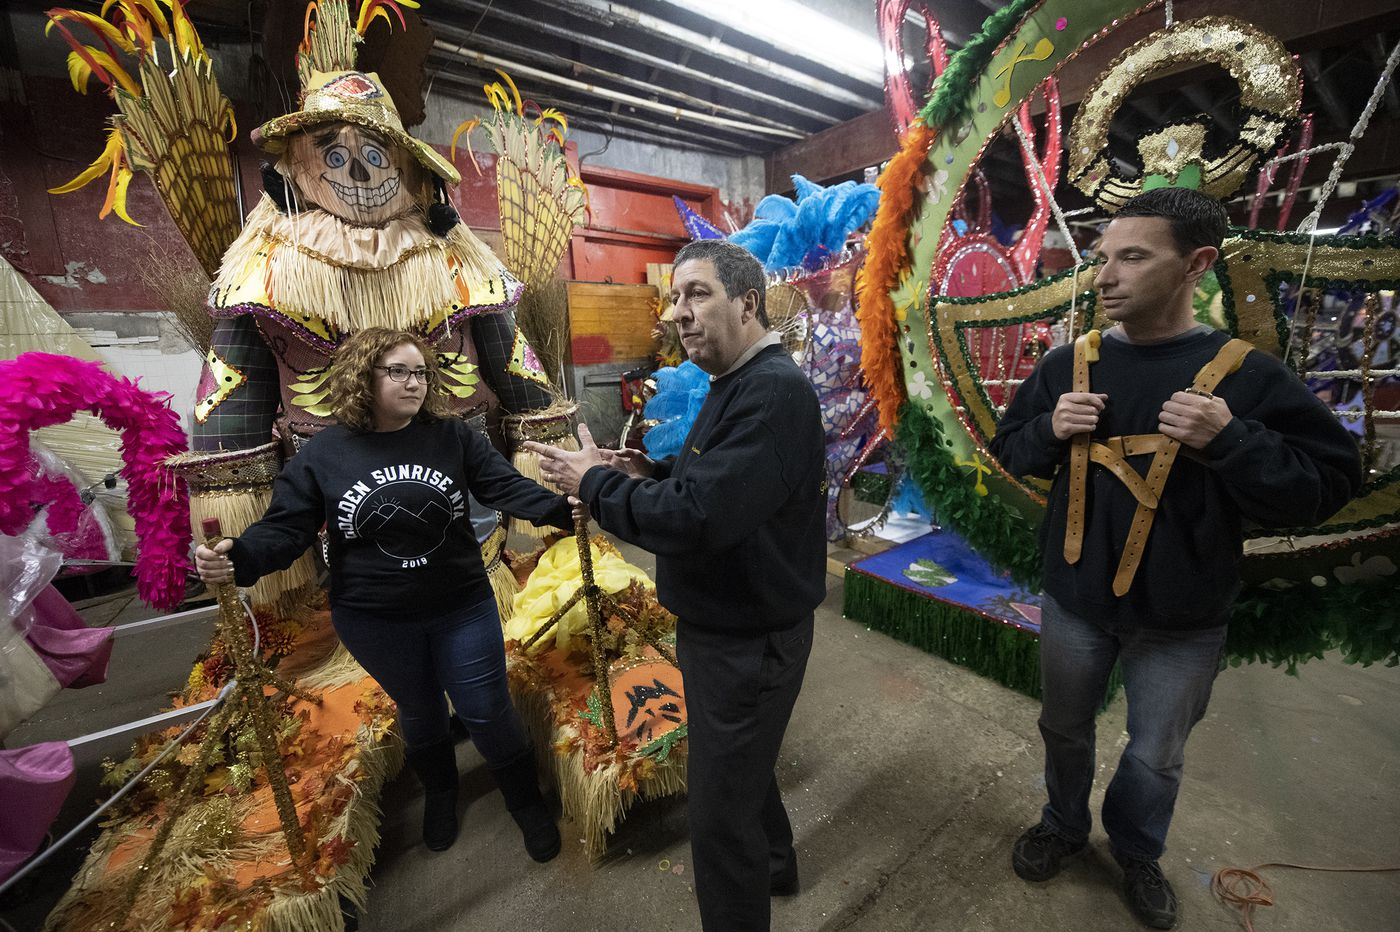 The Mummers Parade is a heavy lift. These marchers take steps to avoid injury.